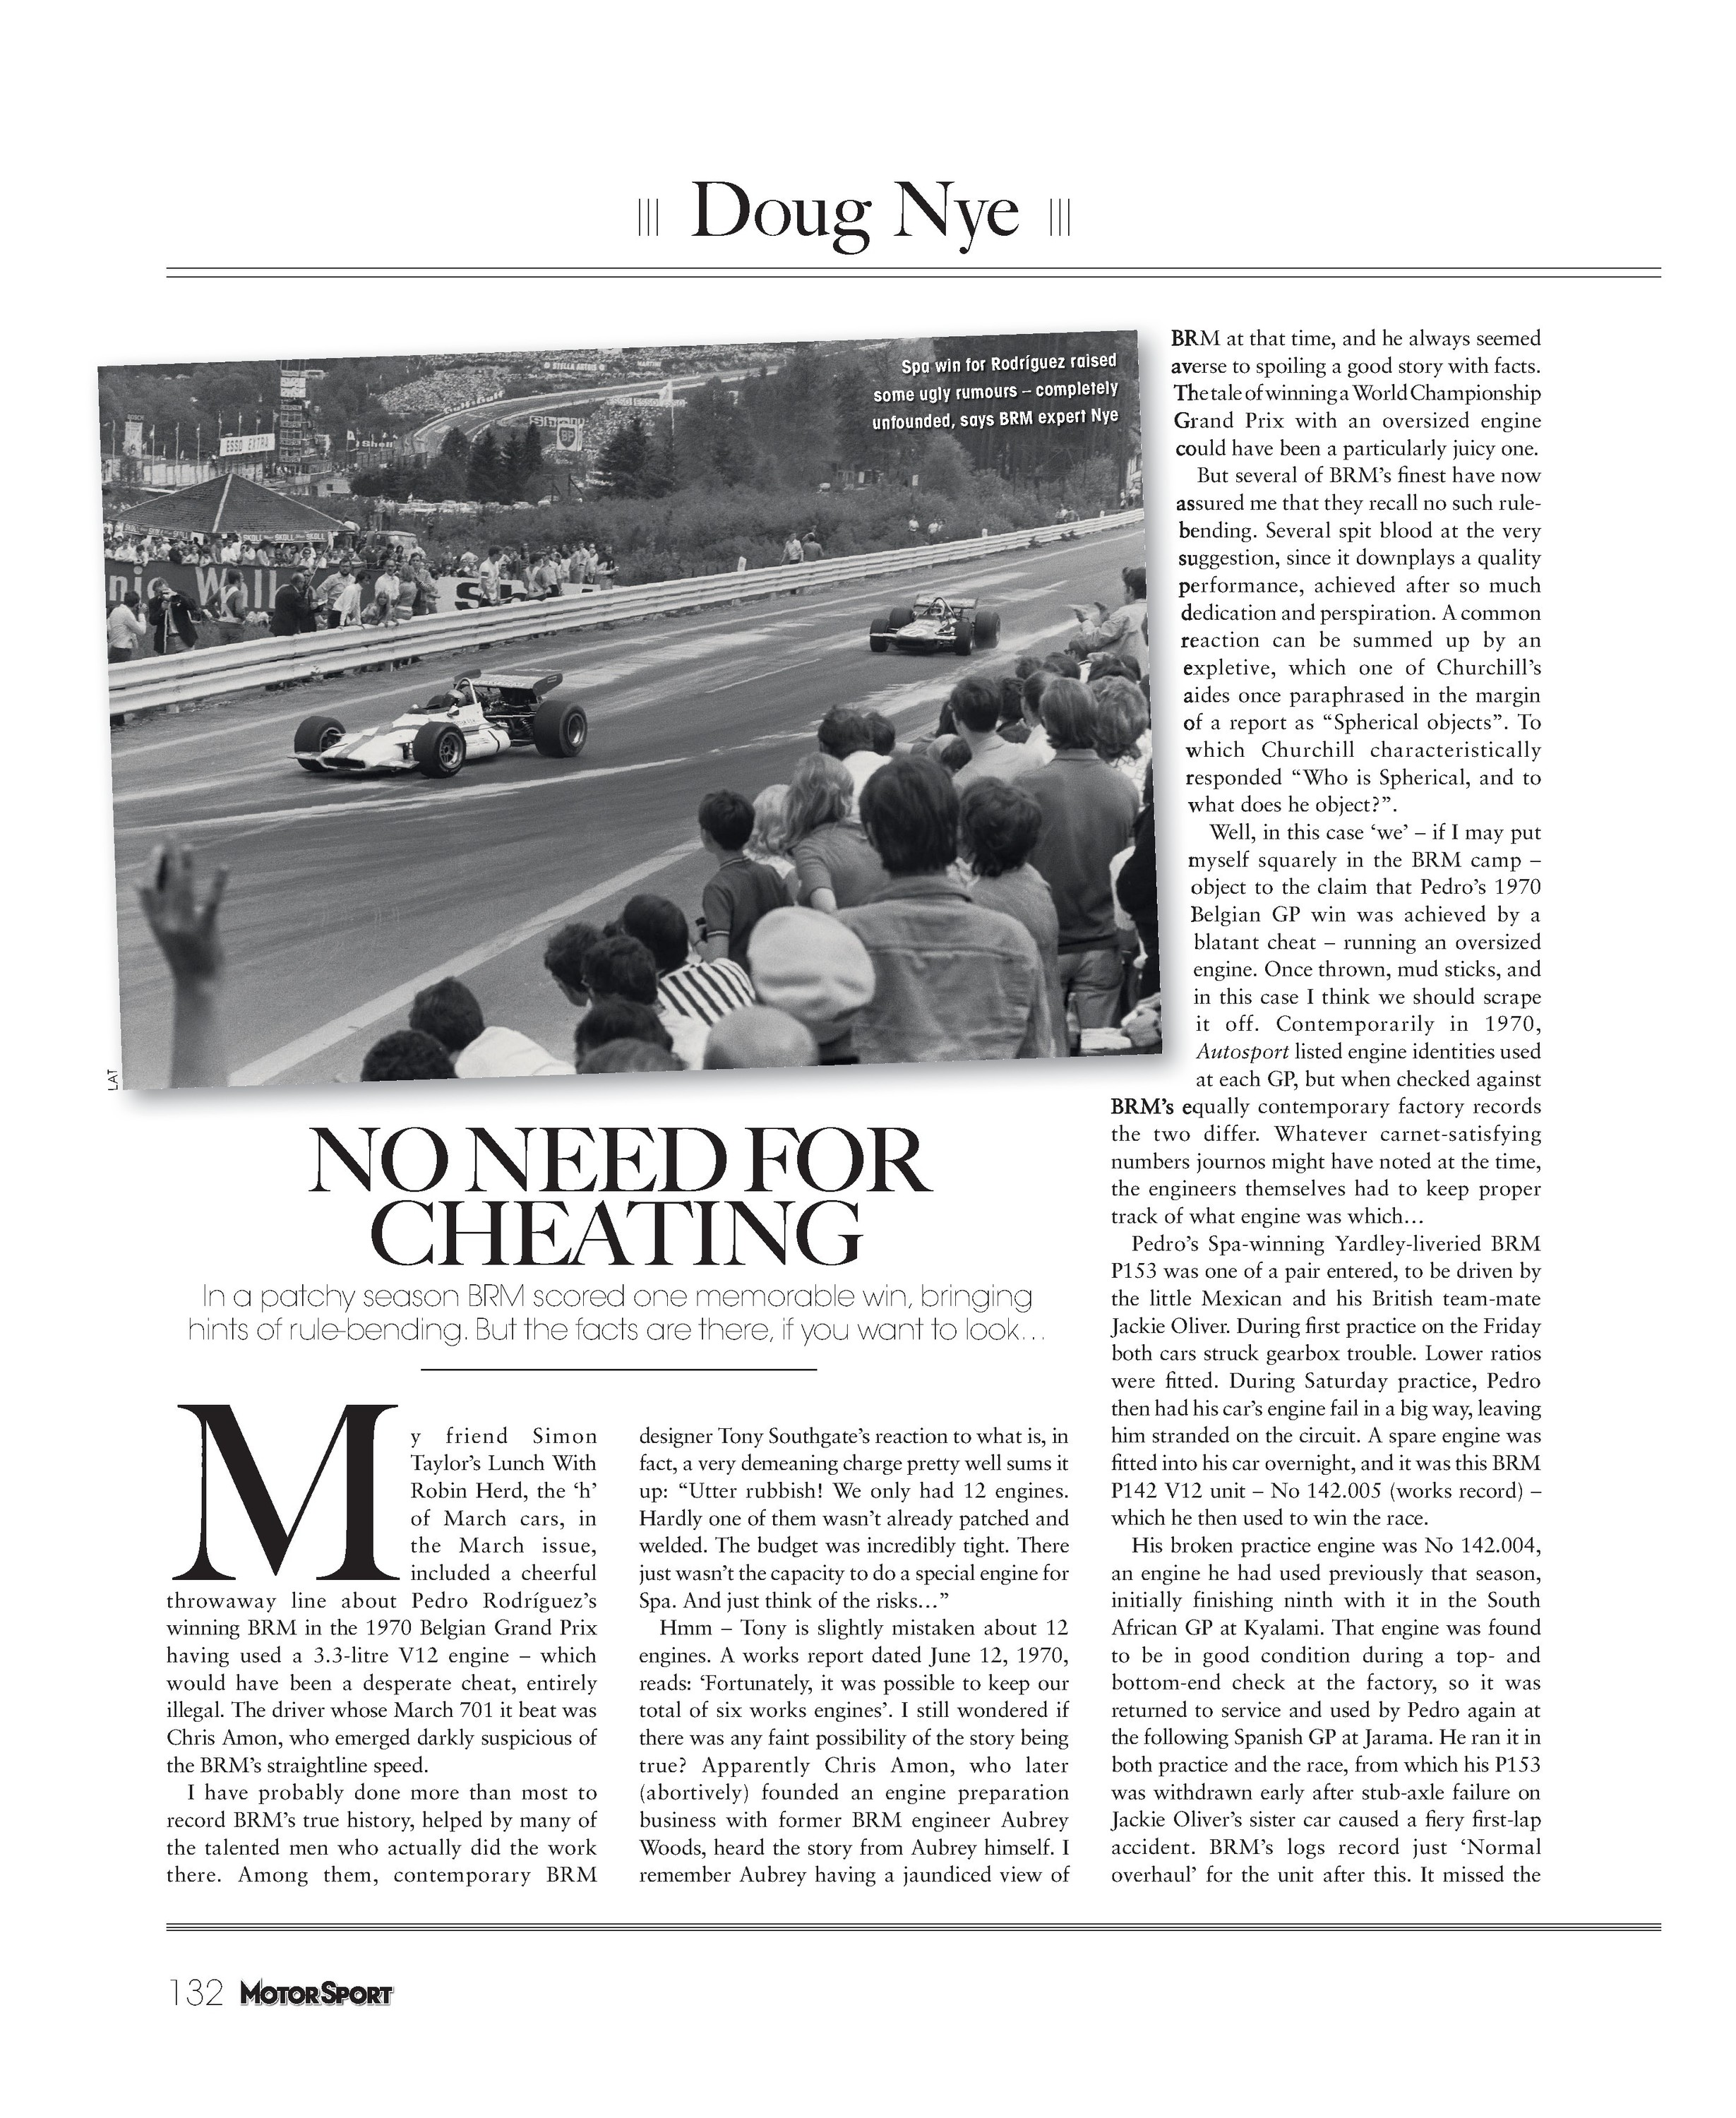 No need for cheating | Motor Sport Magazine Archive